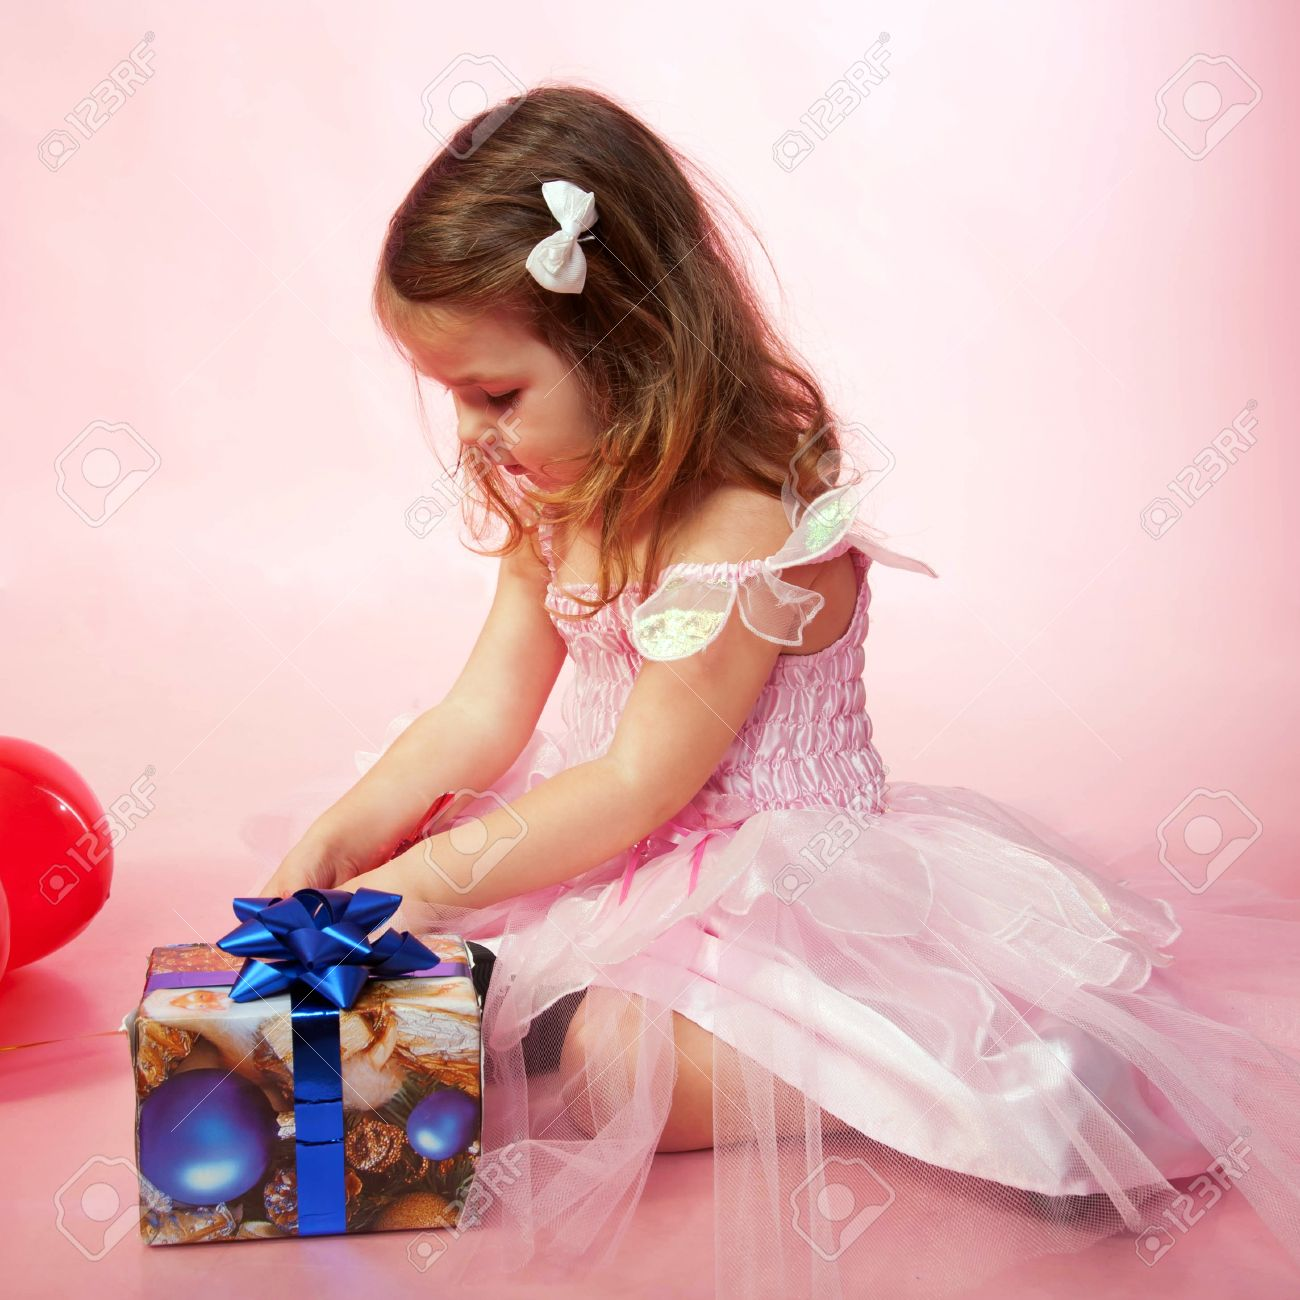 Little Child Wearing Pink Dress Rejoicing And Looking On Christmas